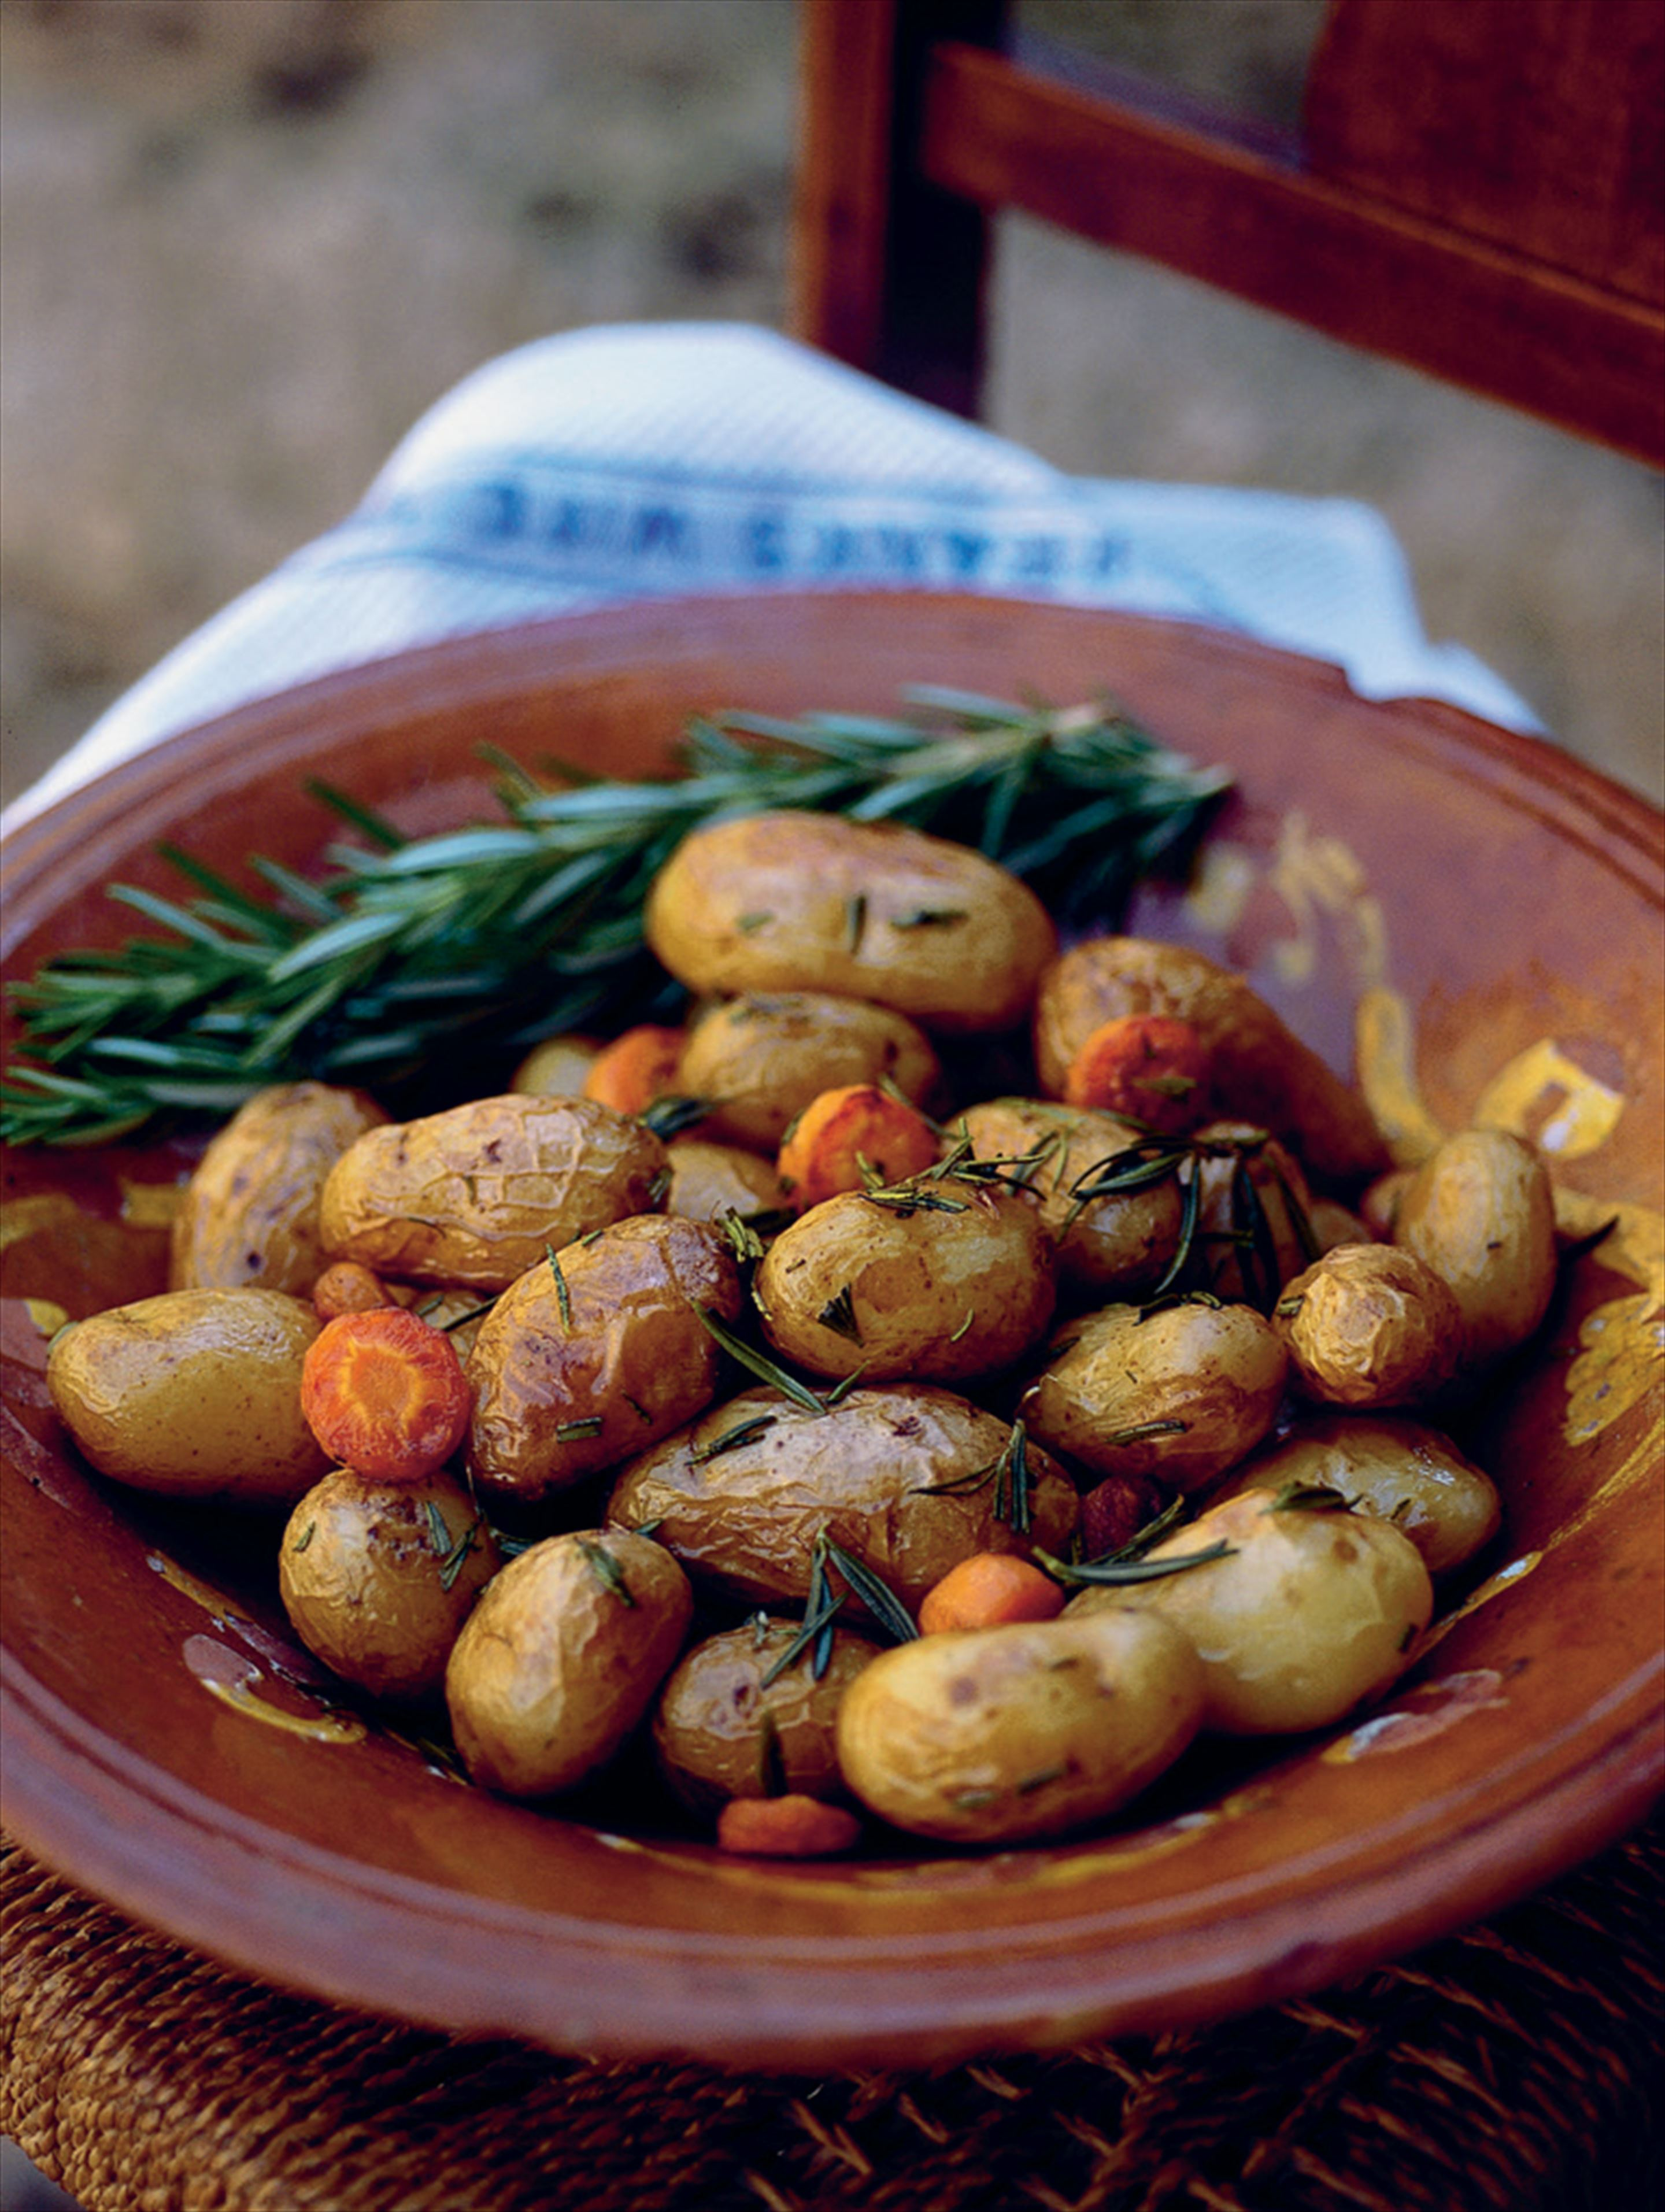 Rosemary and carrot potatoes